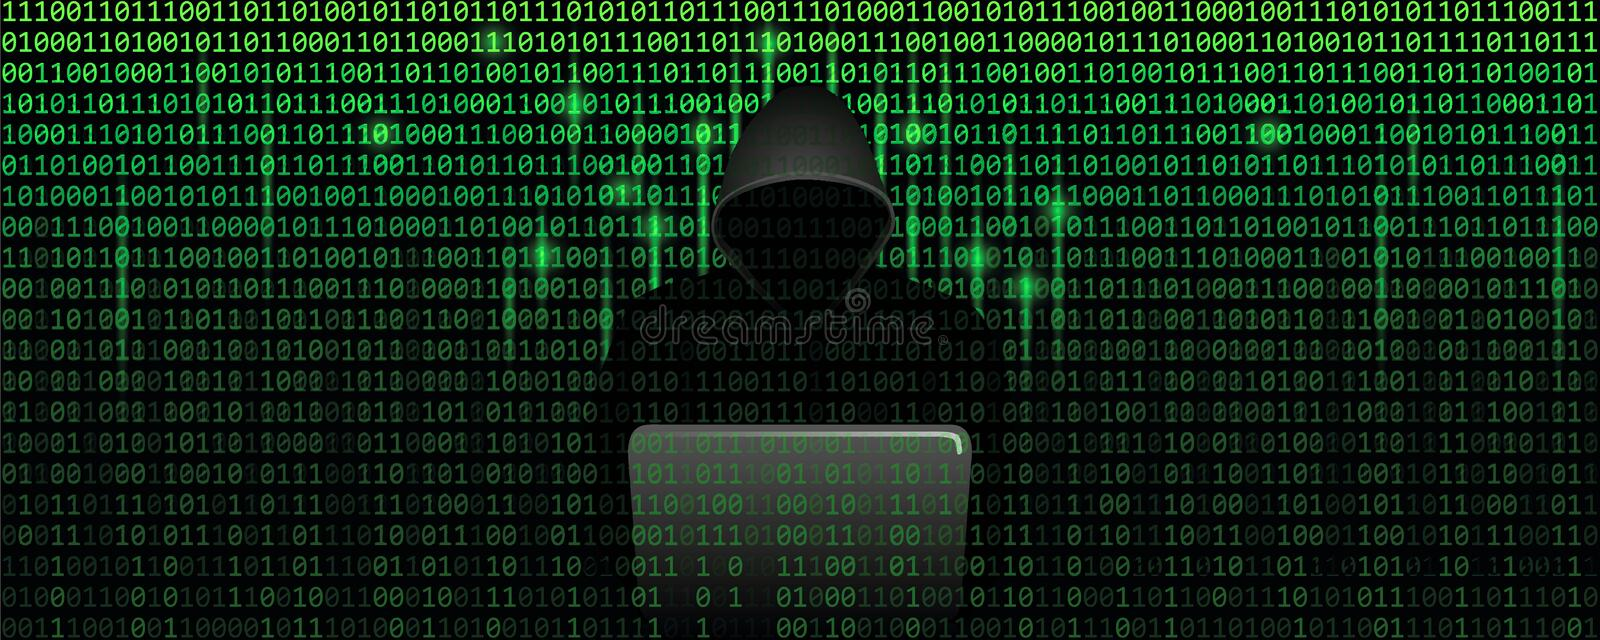 Computer hacker in matrix cybercrime concept with binary code web background vector illustration